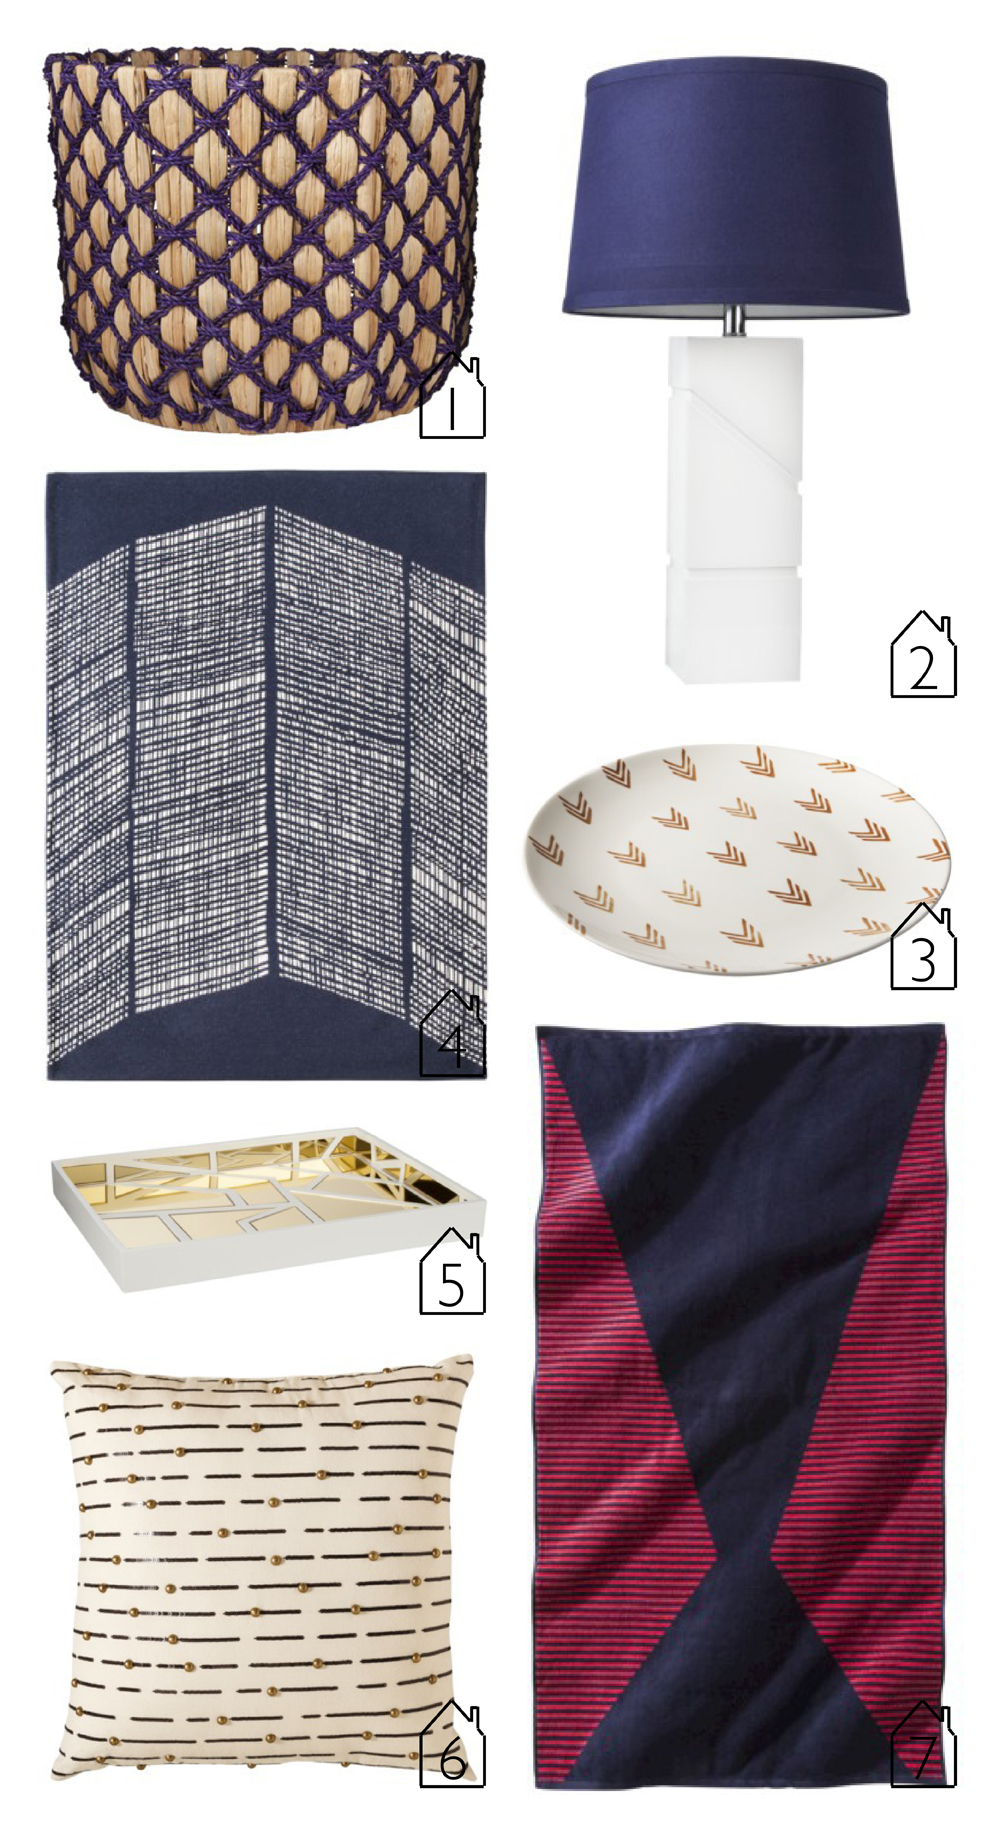 1.  Seagrass Flatweave Basket   2.  Table Lamp   3.  Patterned Ceramic Tray   4.  Area Rug   5.  Gold Mirrored Decorative Tray   6.  Studded Cream Pillow   7.  Zig Zag Beach Towel